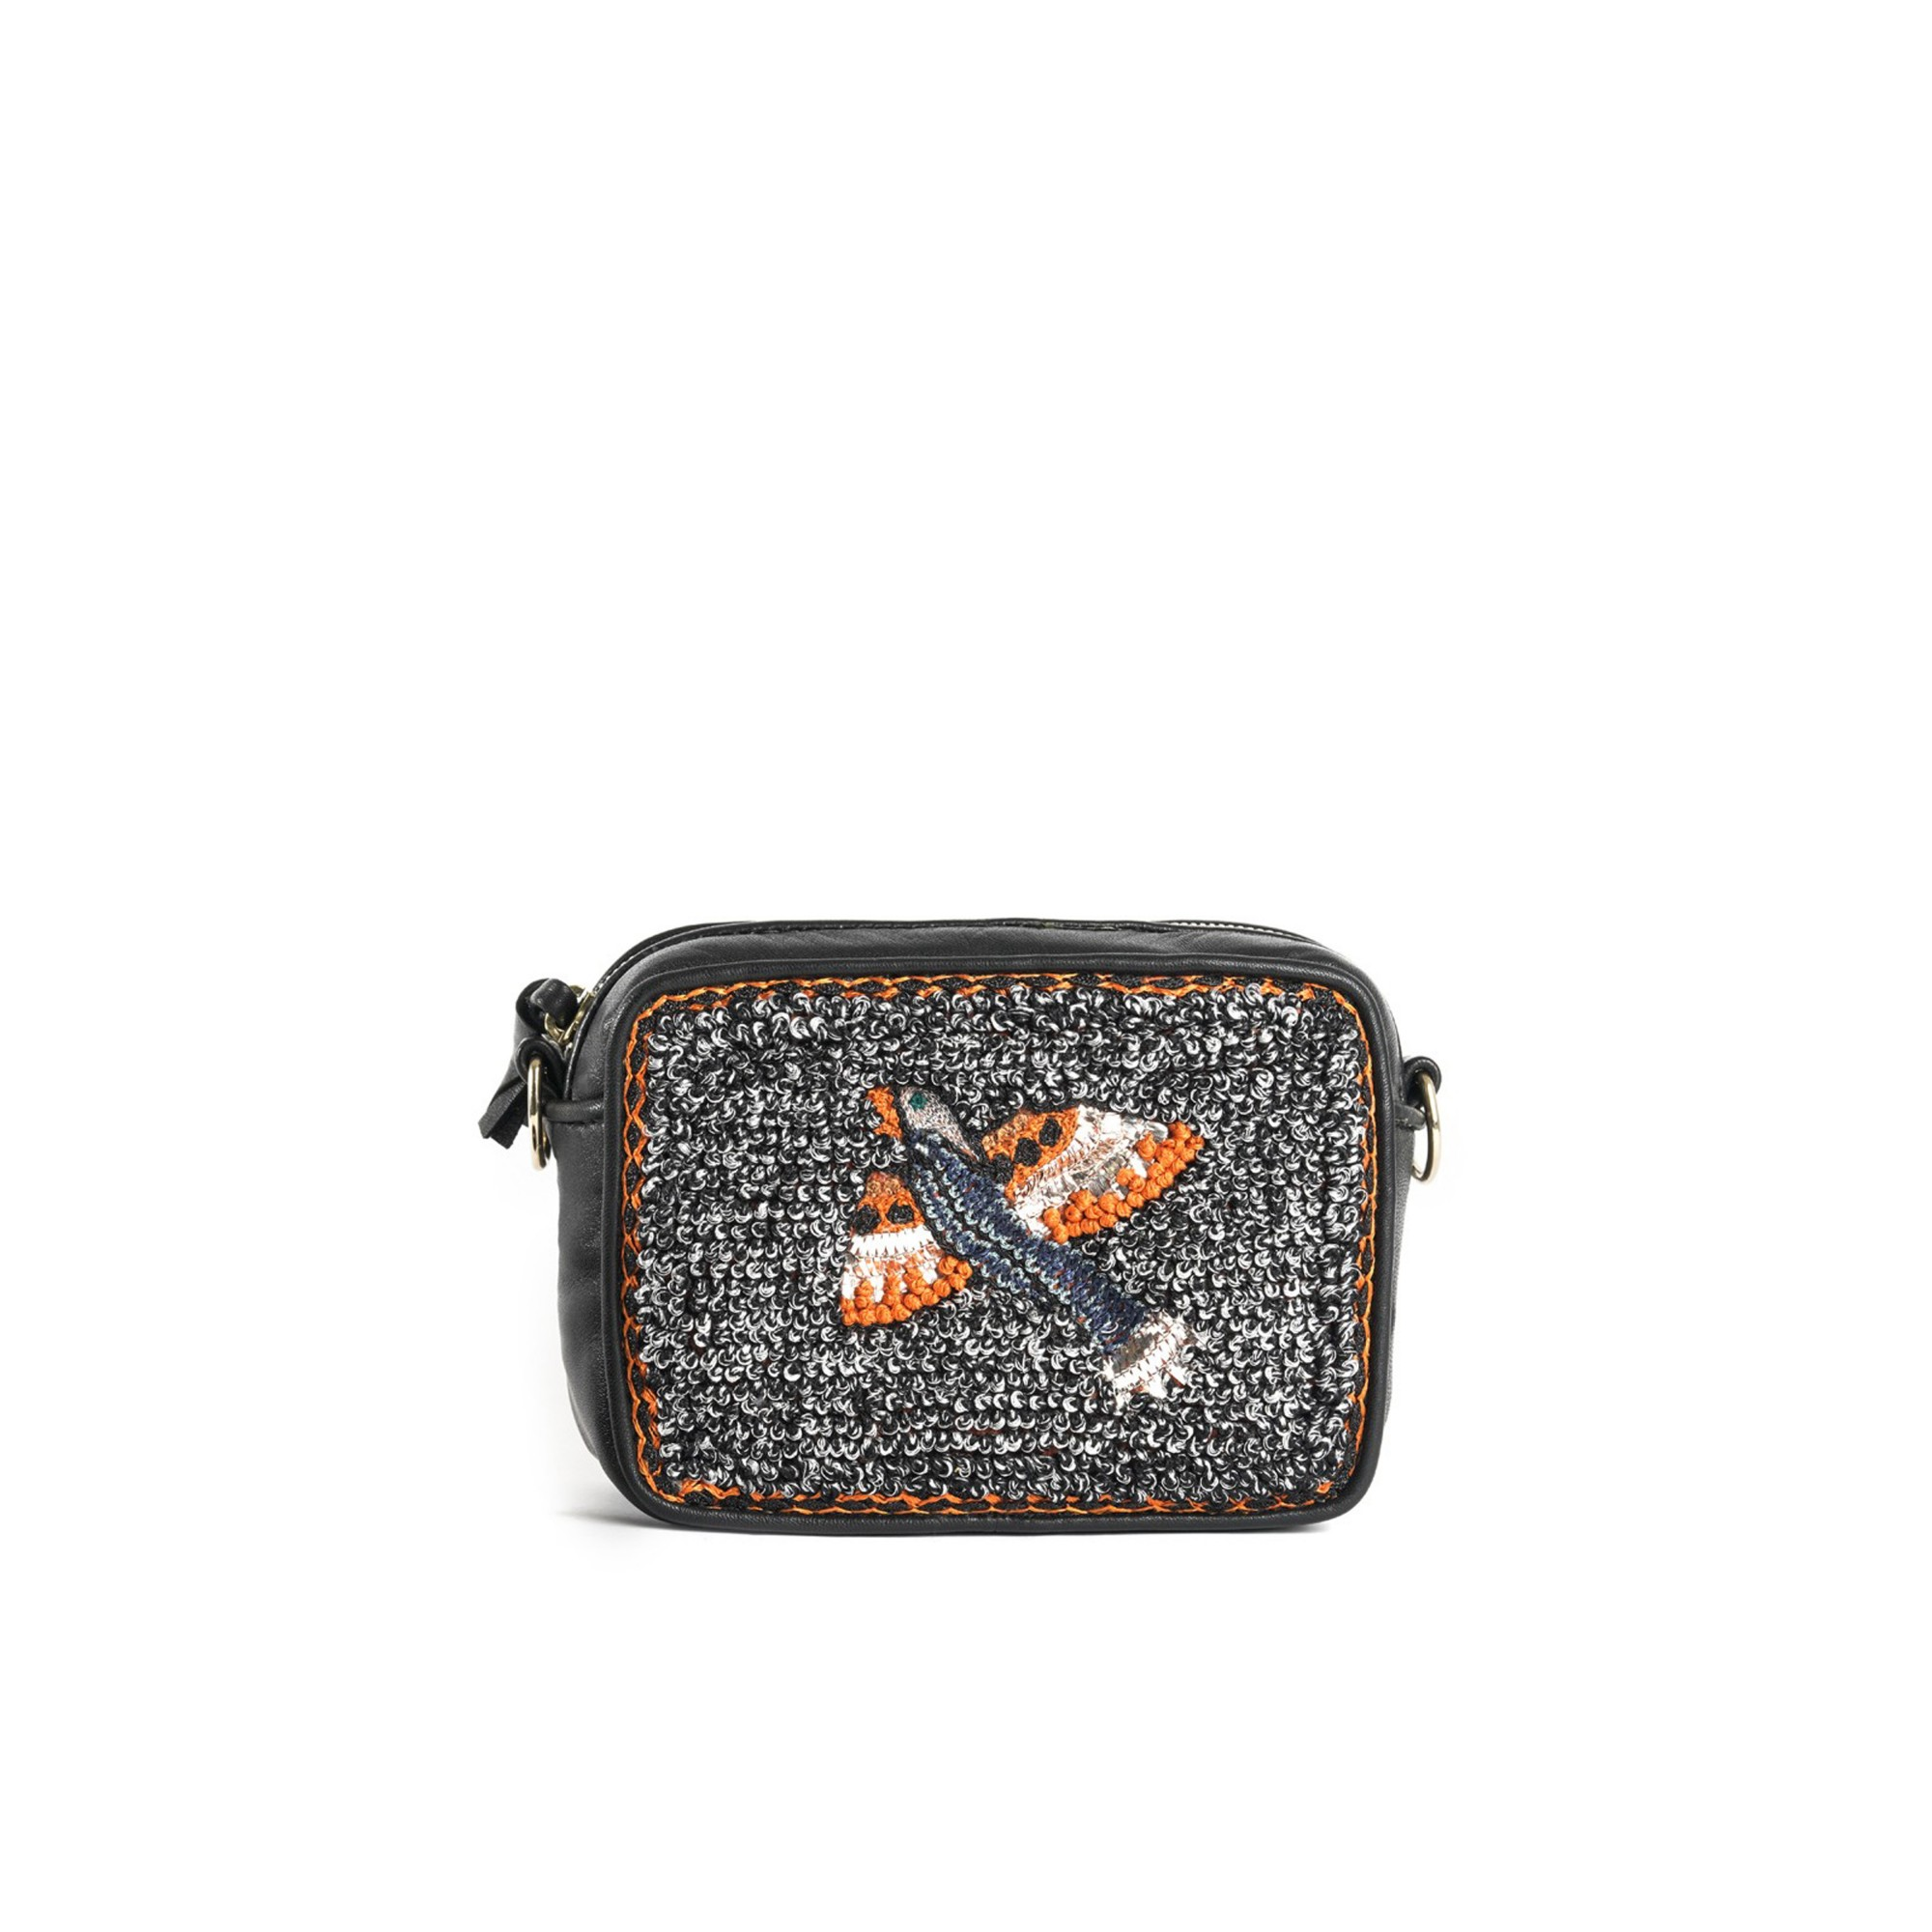 BIRD MINI CAMERA BAG - GREY